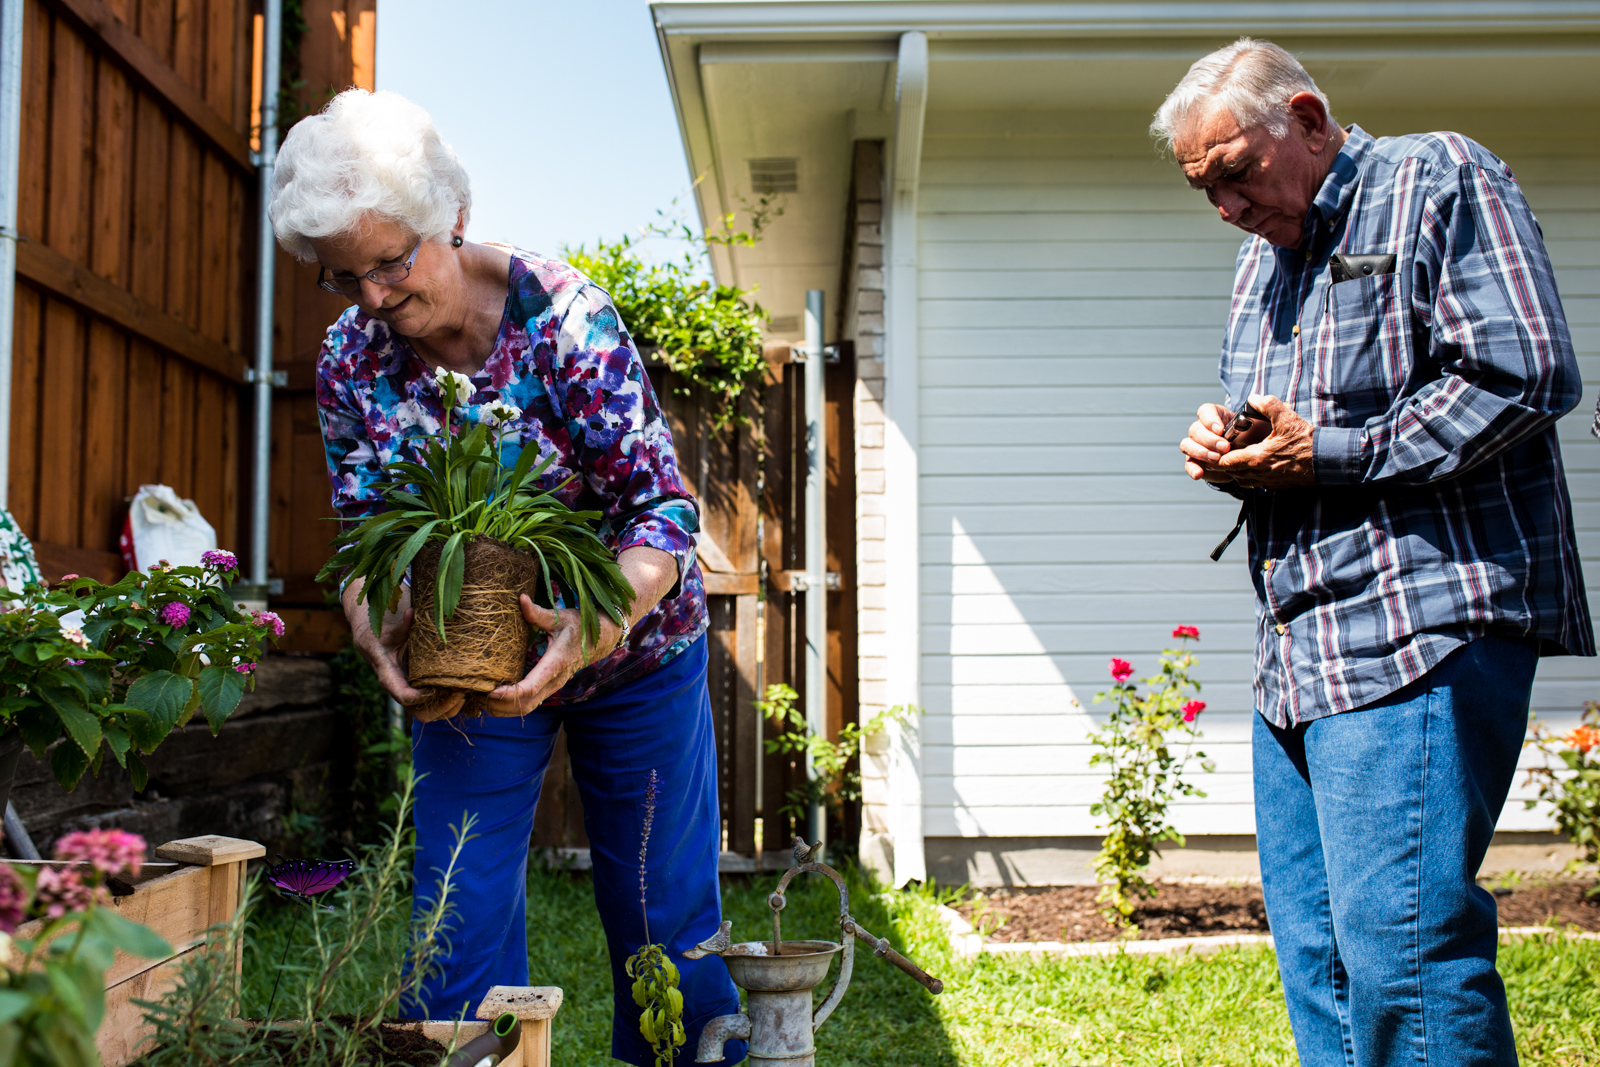 elderly people plant a flower in a garden